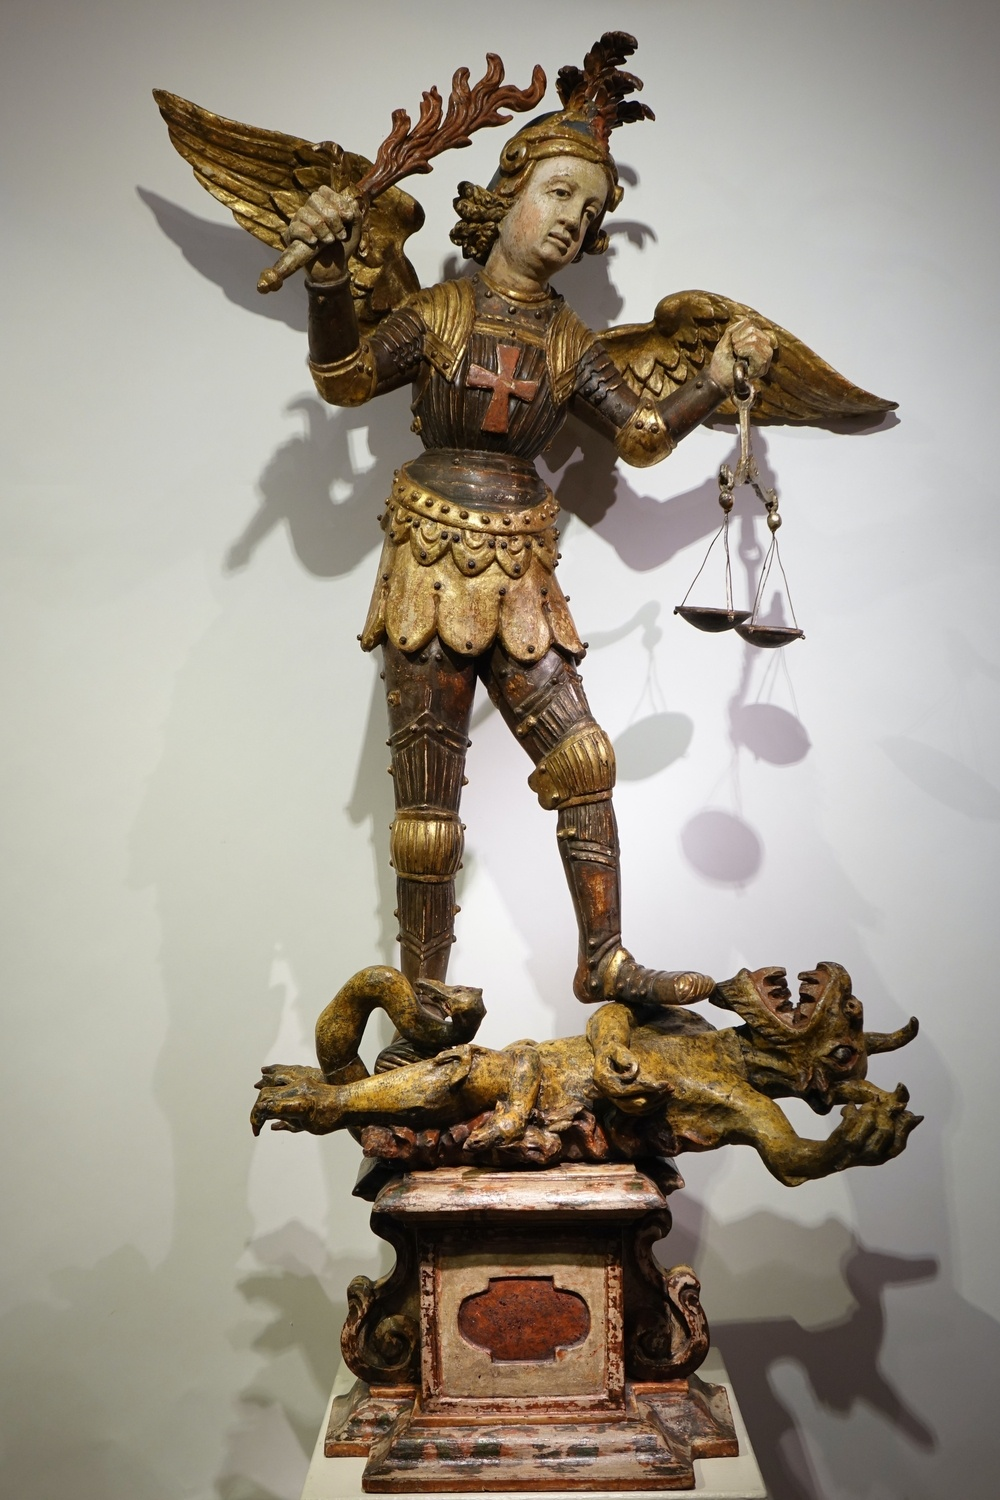 Saint Michael the Archangel, Southern Germany or Italy la credence antiques paris